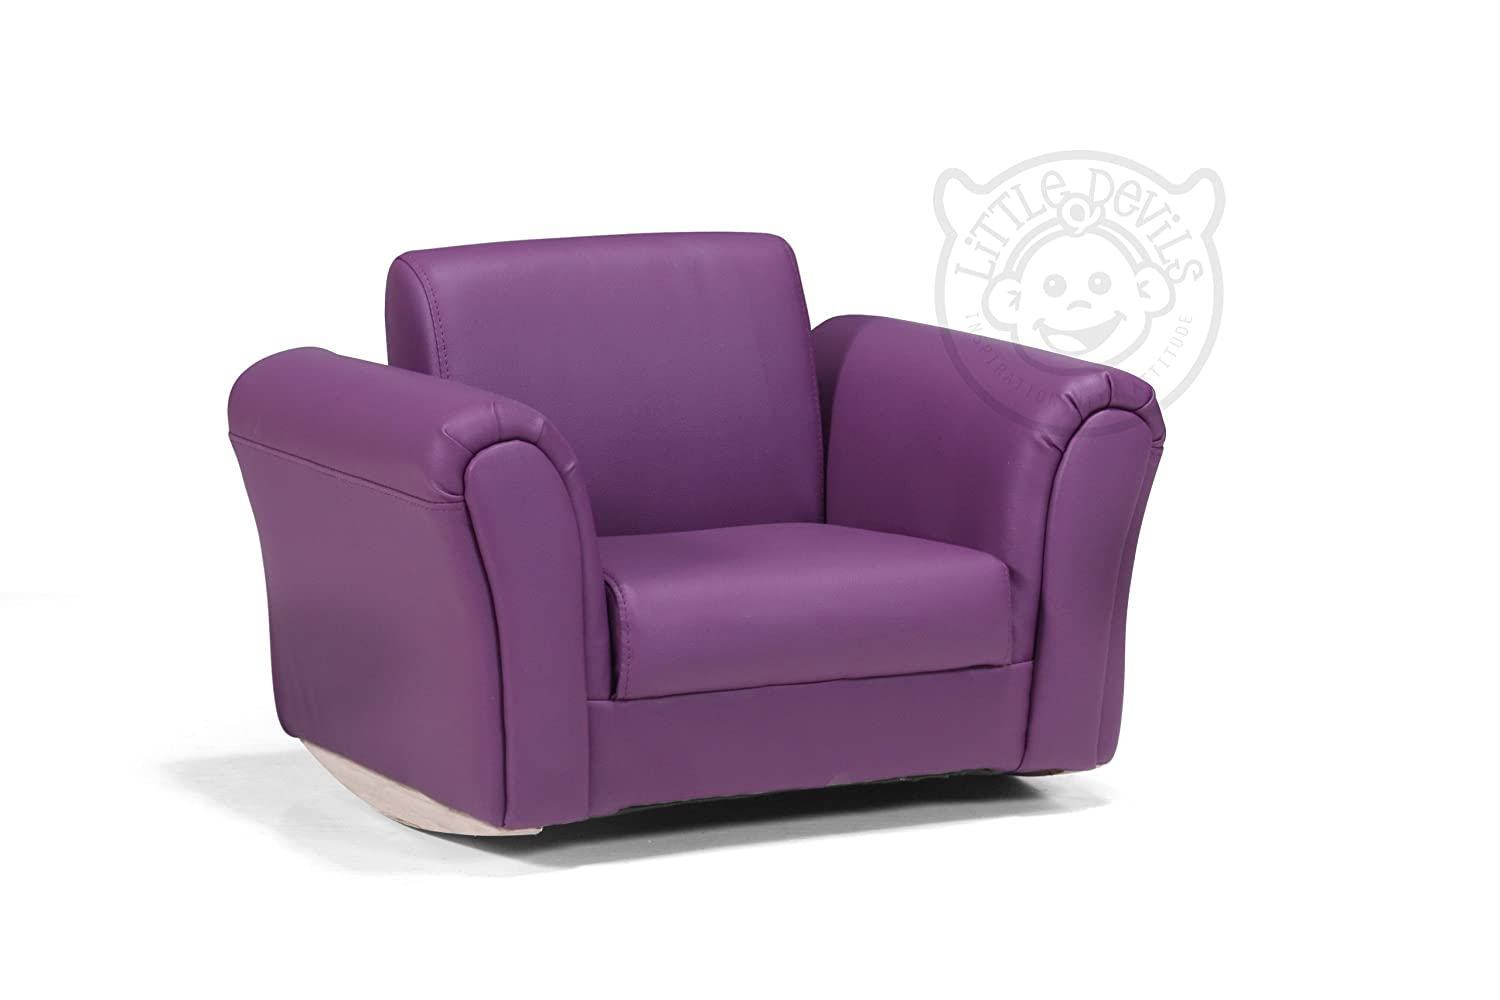 PURPLE LEATHER LAZYBONES KIDS TWIN SOFA Chair/Seat/Armchair/Sofa For  Children/Childs: Amazon.co.uk: Kitchen & Home